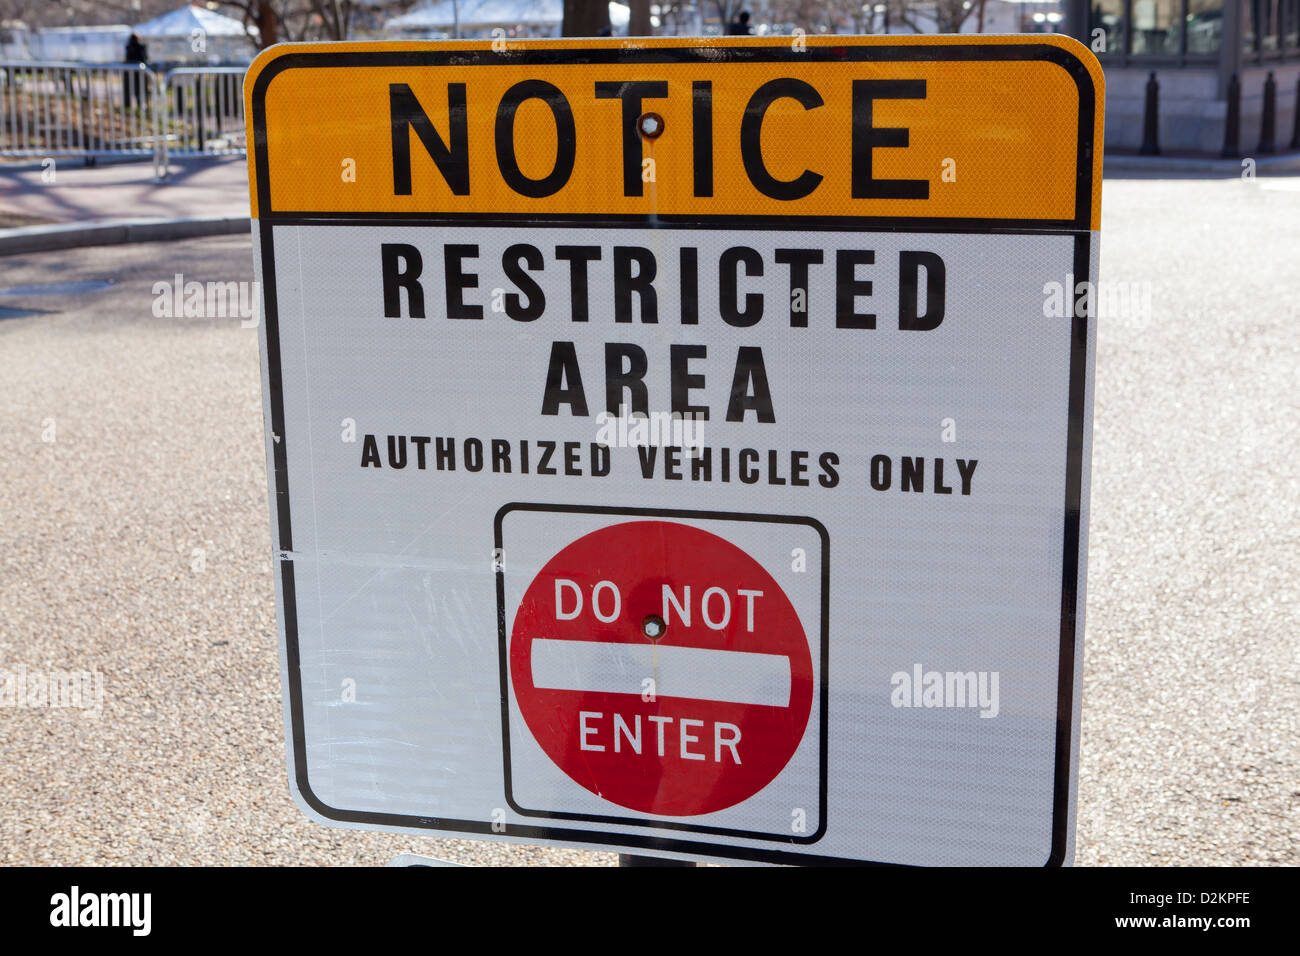 Restricted area sign - Stock Image